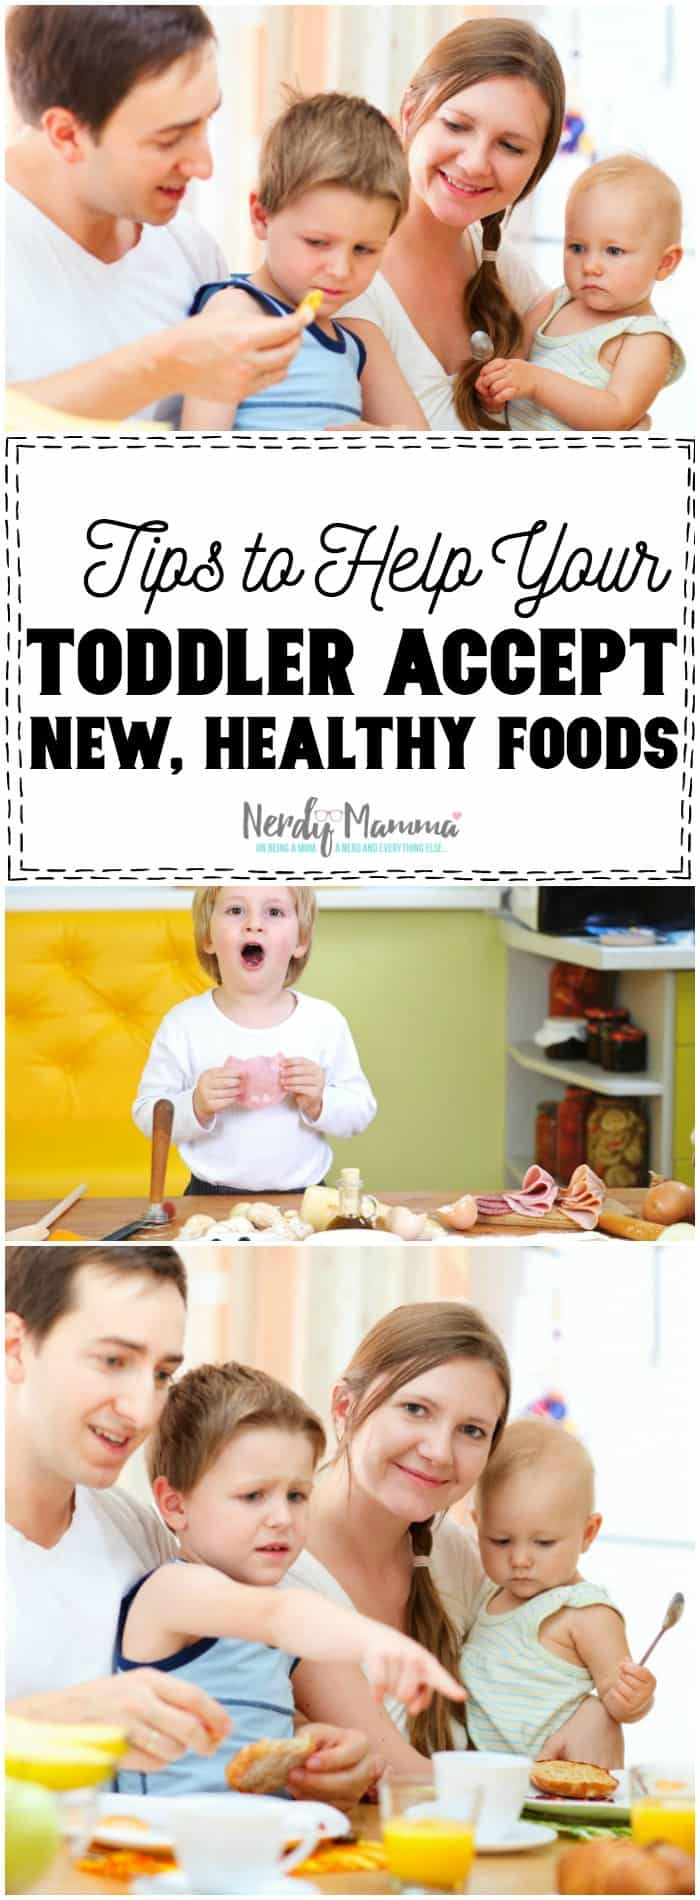 Oh, I just LOVE these tips for getting toddlers to eat new foods! I mean, I kind of knew I was getting frustrated...but now I have a plan. LOL!